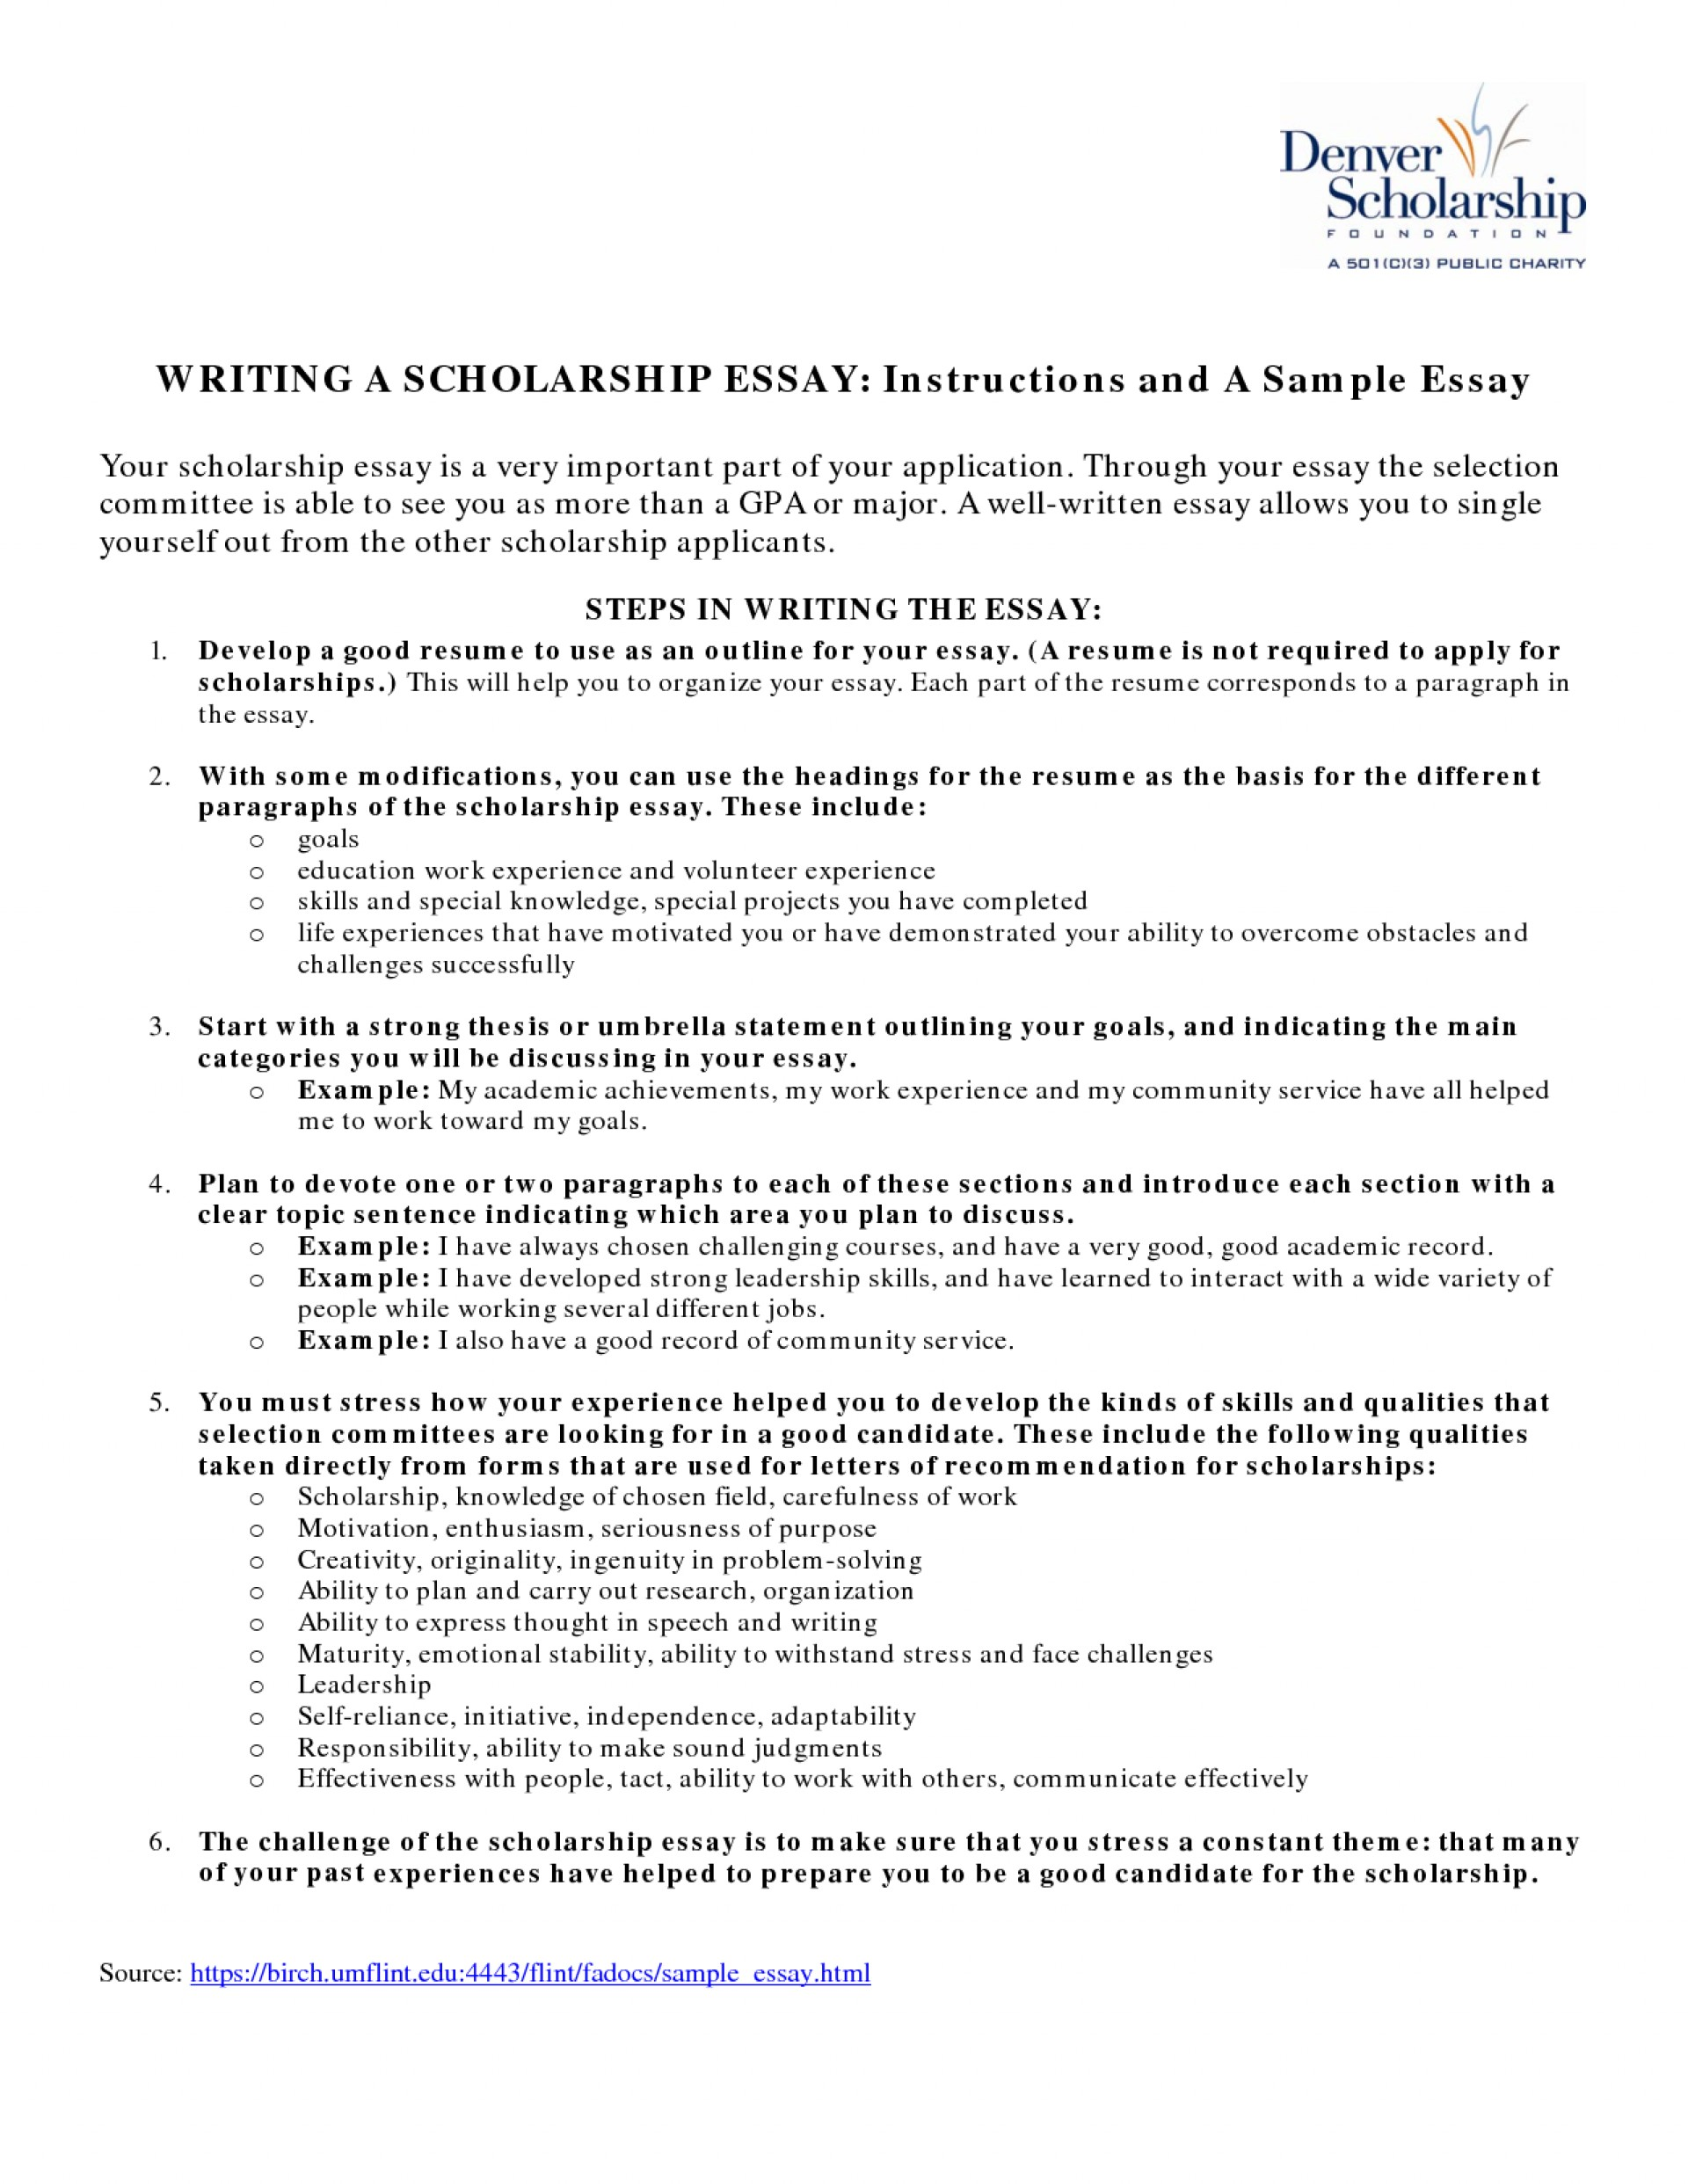 023 Essay Example What To Write For Scholarship About Yourself On Tips Writing Effective Essays Awesome A How That Stands Out Your Career Goals Financial Need 1920